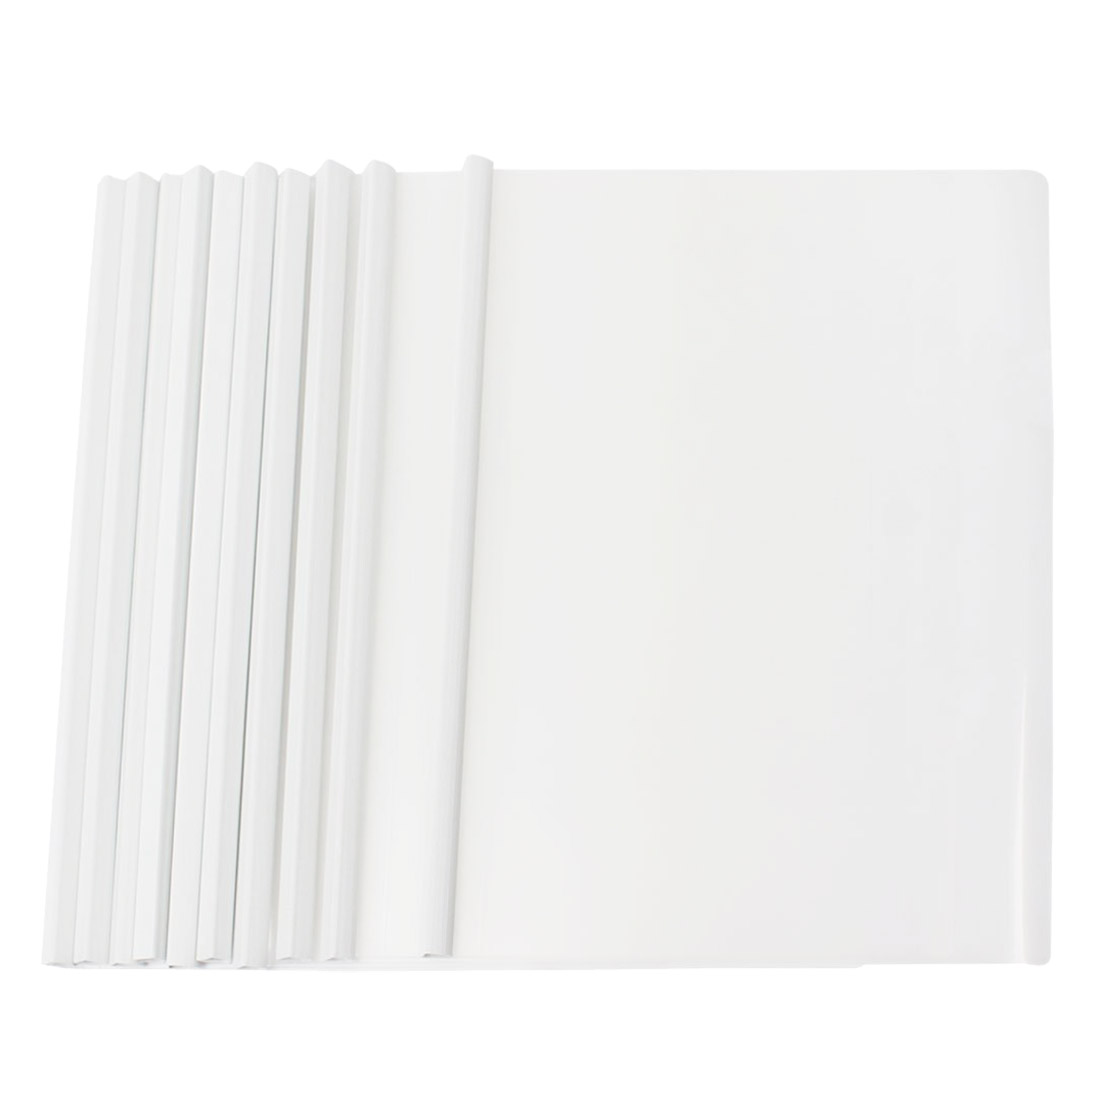 10 Pcs White Plastic Sliding Bar File Folder For A4 Paper Report